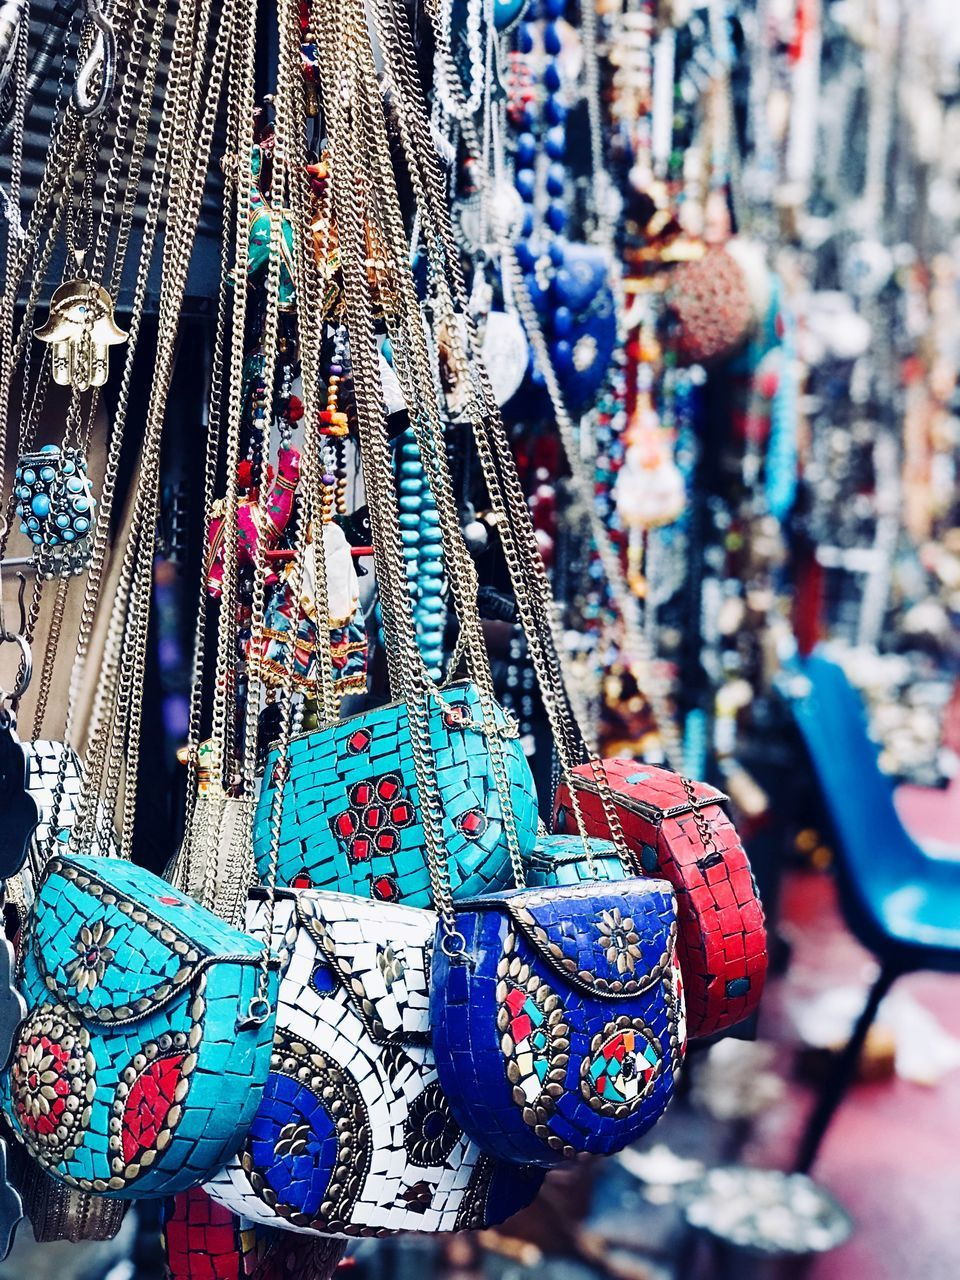 for sale, no people, day, retail, multi colored, focus on foreground, hanging, large group of objects, market, choice, abundance, retail display, store, variation, art and craft, outdoors, close-up, selective focus, small business, religion, consumerism, street market